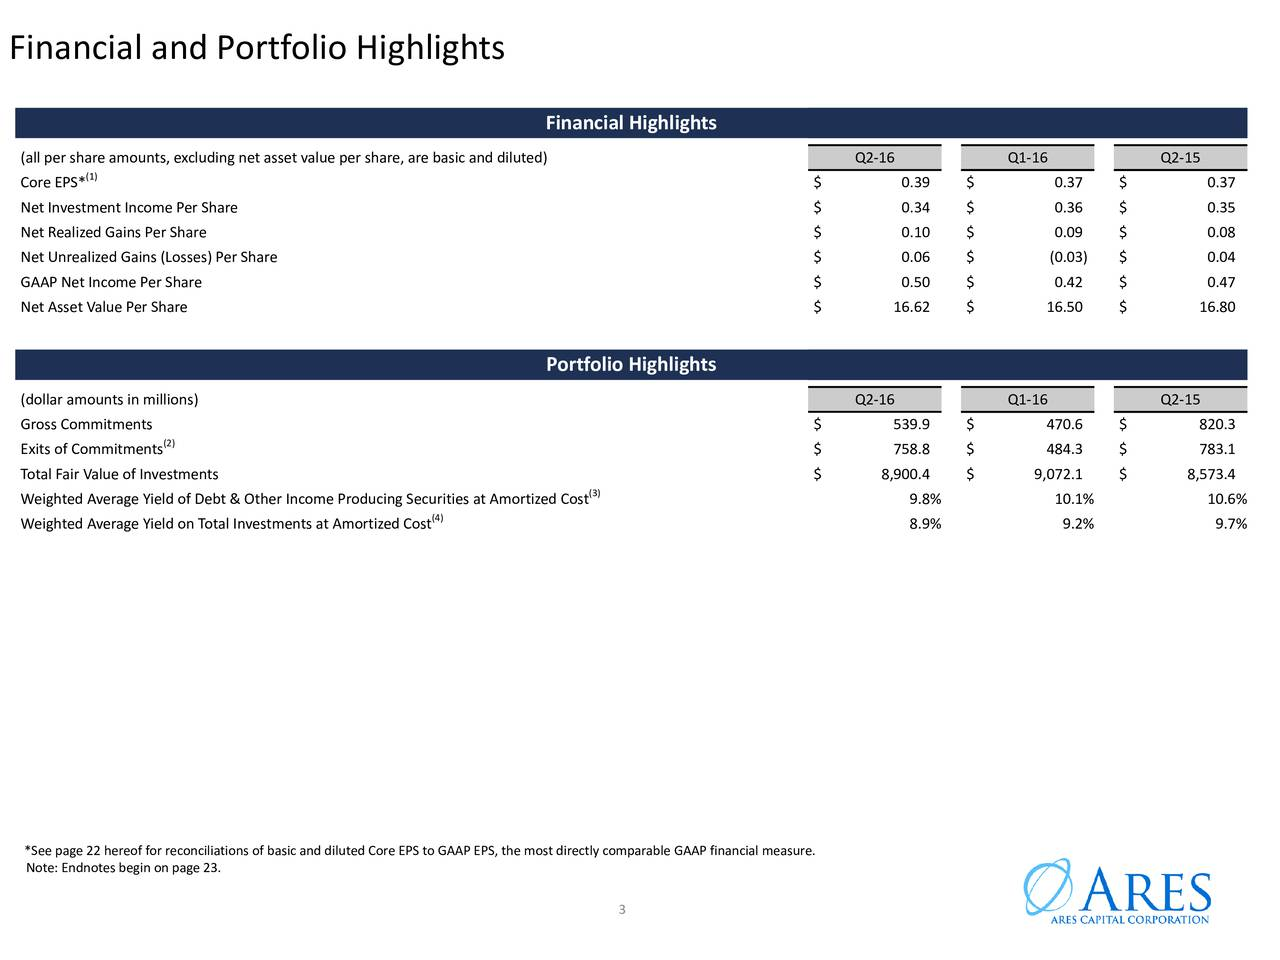 Financial Highlights (all per share amounts, excluding net asset value per share, are basic and diluted) Q2-16 Q1-16 Q2-15 (1) Core EPS* $ 0.39 $ 0.37 $ 0.37 Net Investment Income Per Share $ 0.34 $ 0.36 $ 0.35 Net Realized Gains Per Share $ 0.10 $ 0.09 $ 0.08 Net Unrealized Gains (Losses) Per Share $ 0.06 $ (0.03) $ 0.04 GAAP Net Income Per Share $ 0.50 $ 0.42 $ 0.47 Net Asset Value Per Share $ 16.62 $ 16.50 $ 16.80 Portfolio Highlights (dollar amounts in millions) Q2-16 Q1-16 Q2-15 Gross Commitments $ 539.9 $ 470.6 $ 820.3 Exits of Commitments(2) $ 758.8 $ 484.3 $ 783.1 Total Fair Value of Investments $ 8,900.4 $ 9,072.1 $ 8,573.4 Weighted Average Yield of Debt & Other Income Producing Securities at Amortized Cost 9.8% 10.1% 10.6% Weighted Average Yield on Total Investments at Amortized Cost 8.9% 9.2% 9.7% *See page 22 hereof for reconciliations of basic and diluted Core EPS to GAAP EPS, the most directly comparable GAAP financial measure. Note: Endnotes begin on page 23. 3